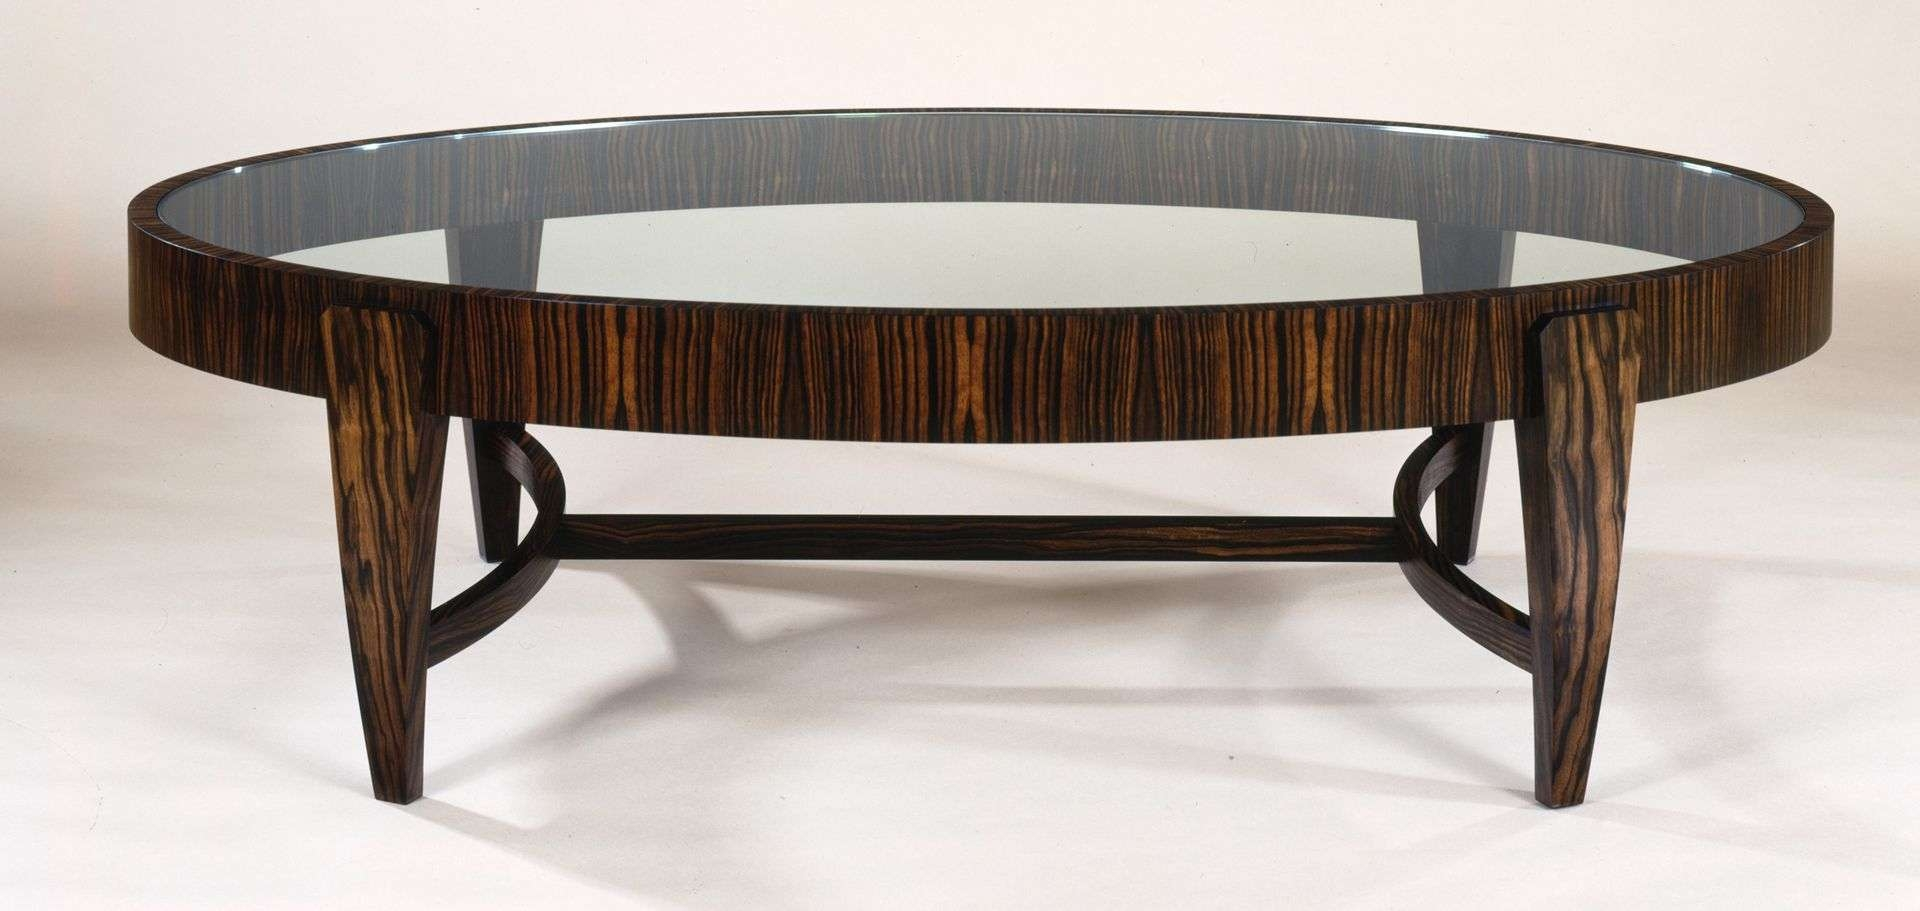 Gorgeous Oval Glass Coffee Table As Contemporary Furniture – Ruchi For Most Recently Released Oval Glass And Wood Coffee Tables (View 2 of 20)